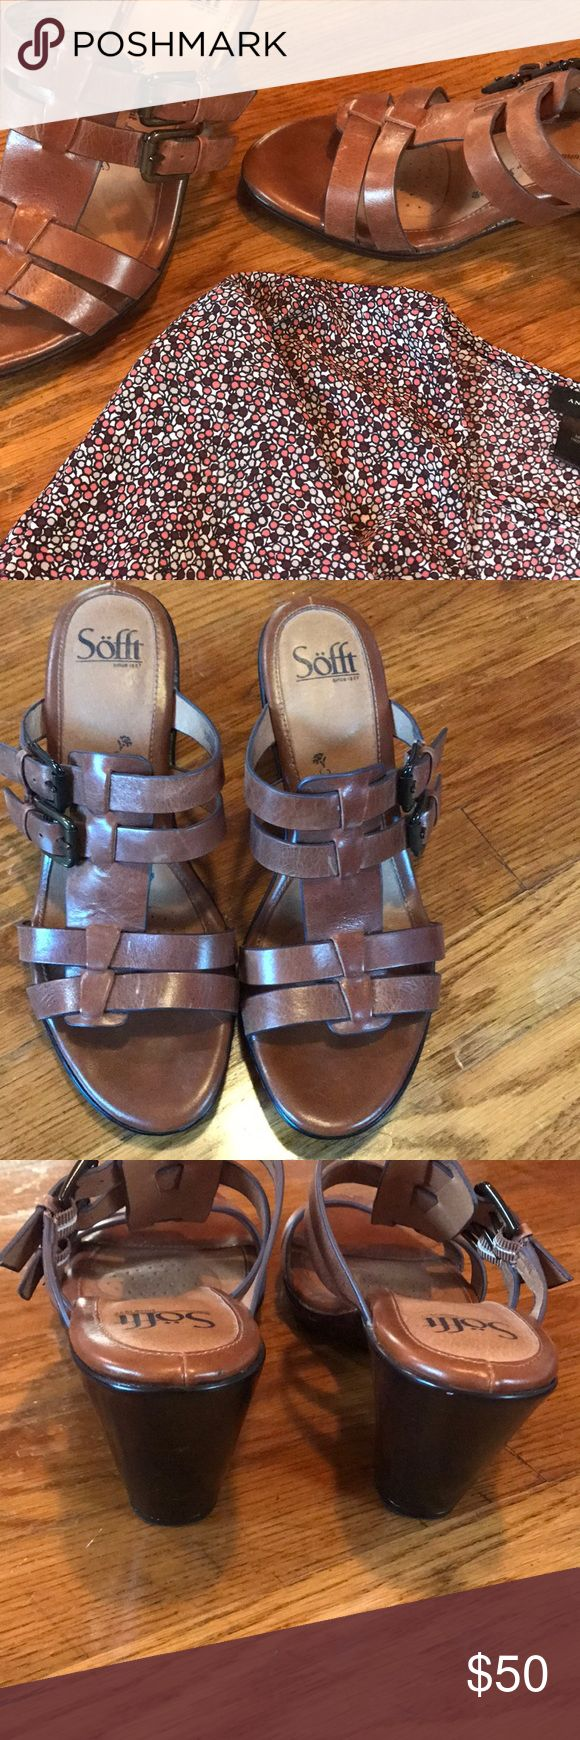 Söfft shoes Great condition only been worn a few times. I'm open to offers and have a smoke free home. The top in the first post is a size small and for sale. Sofft Shoes Heels